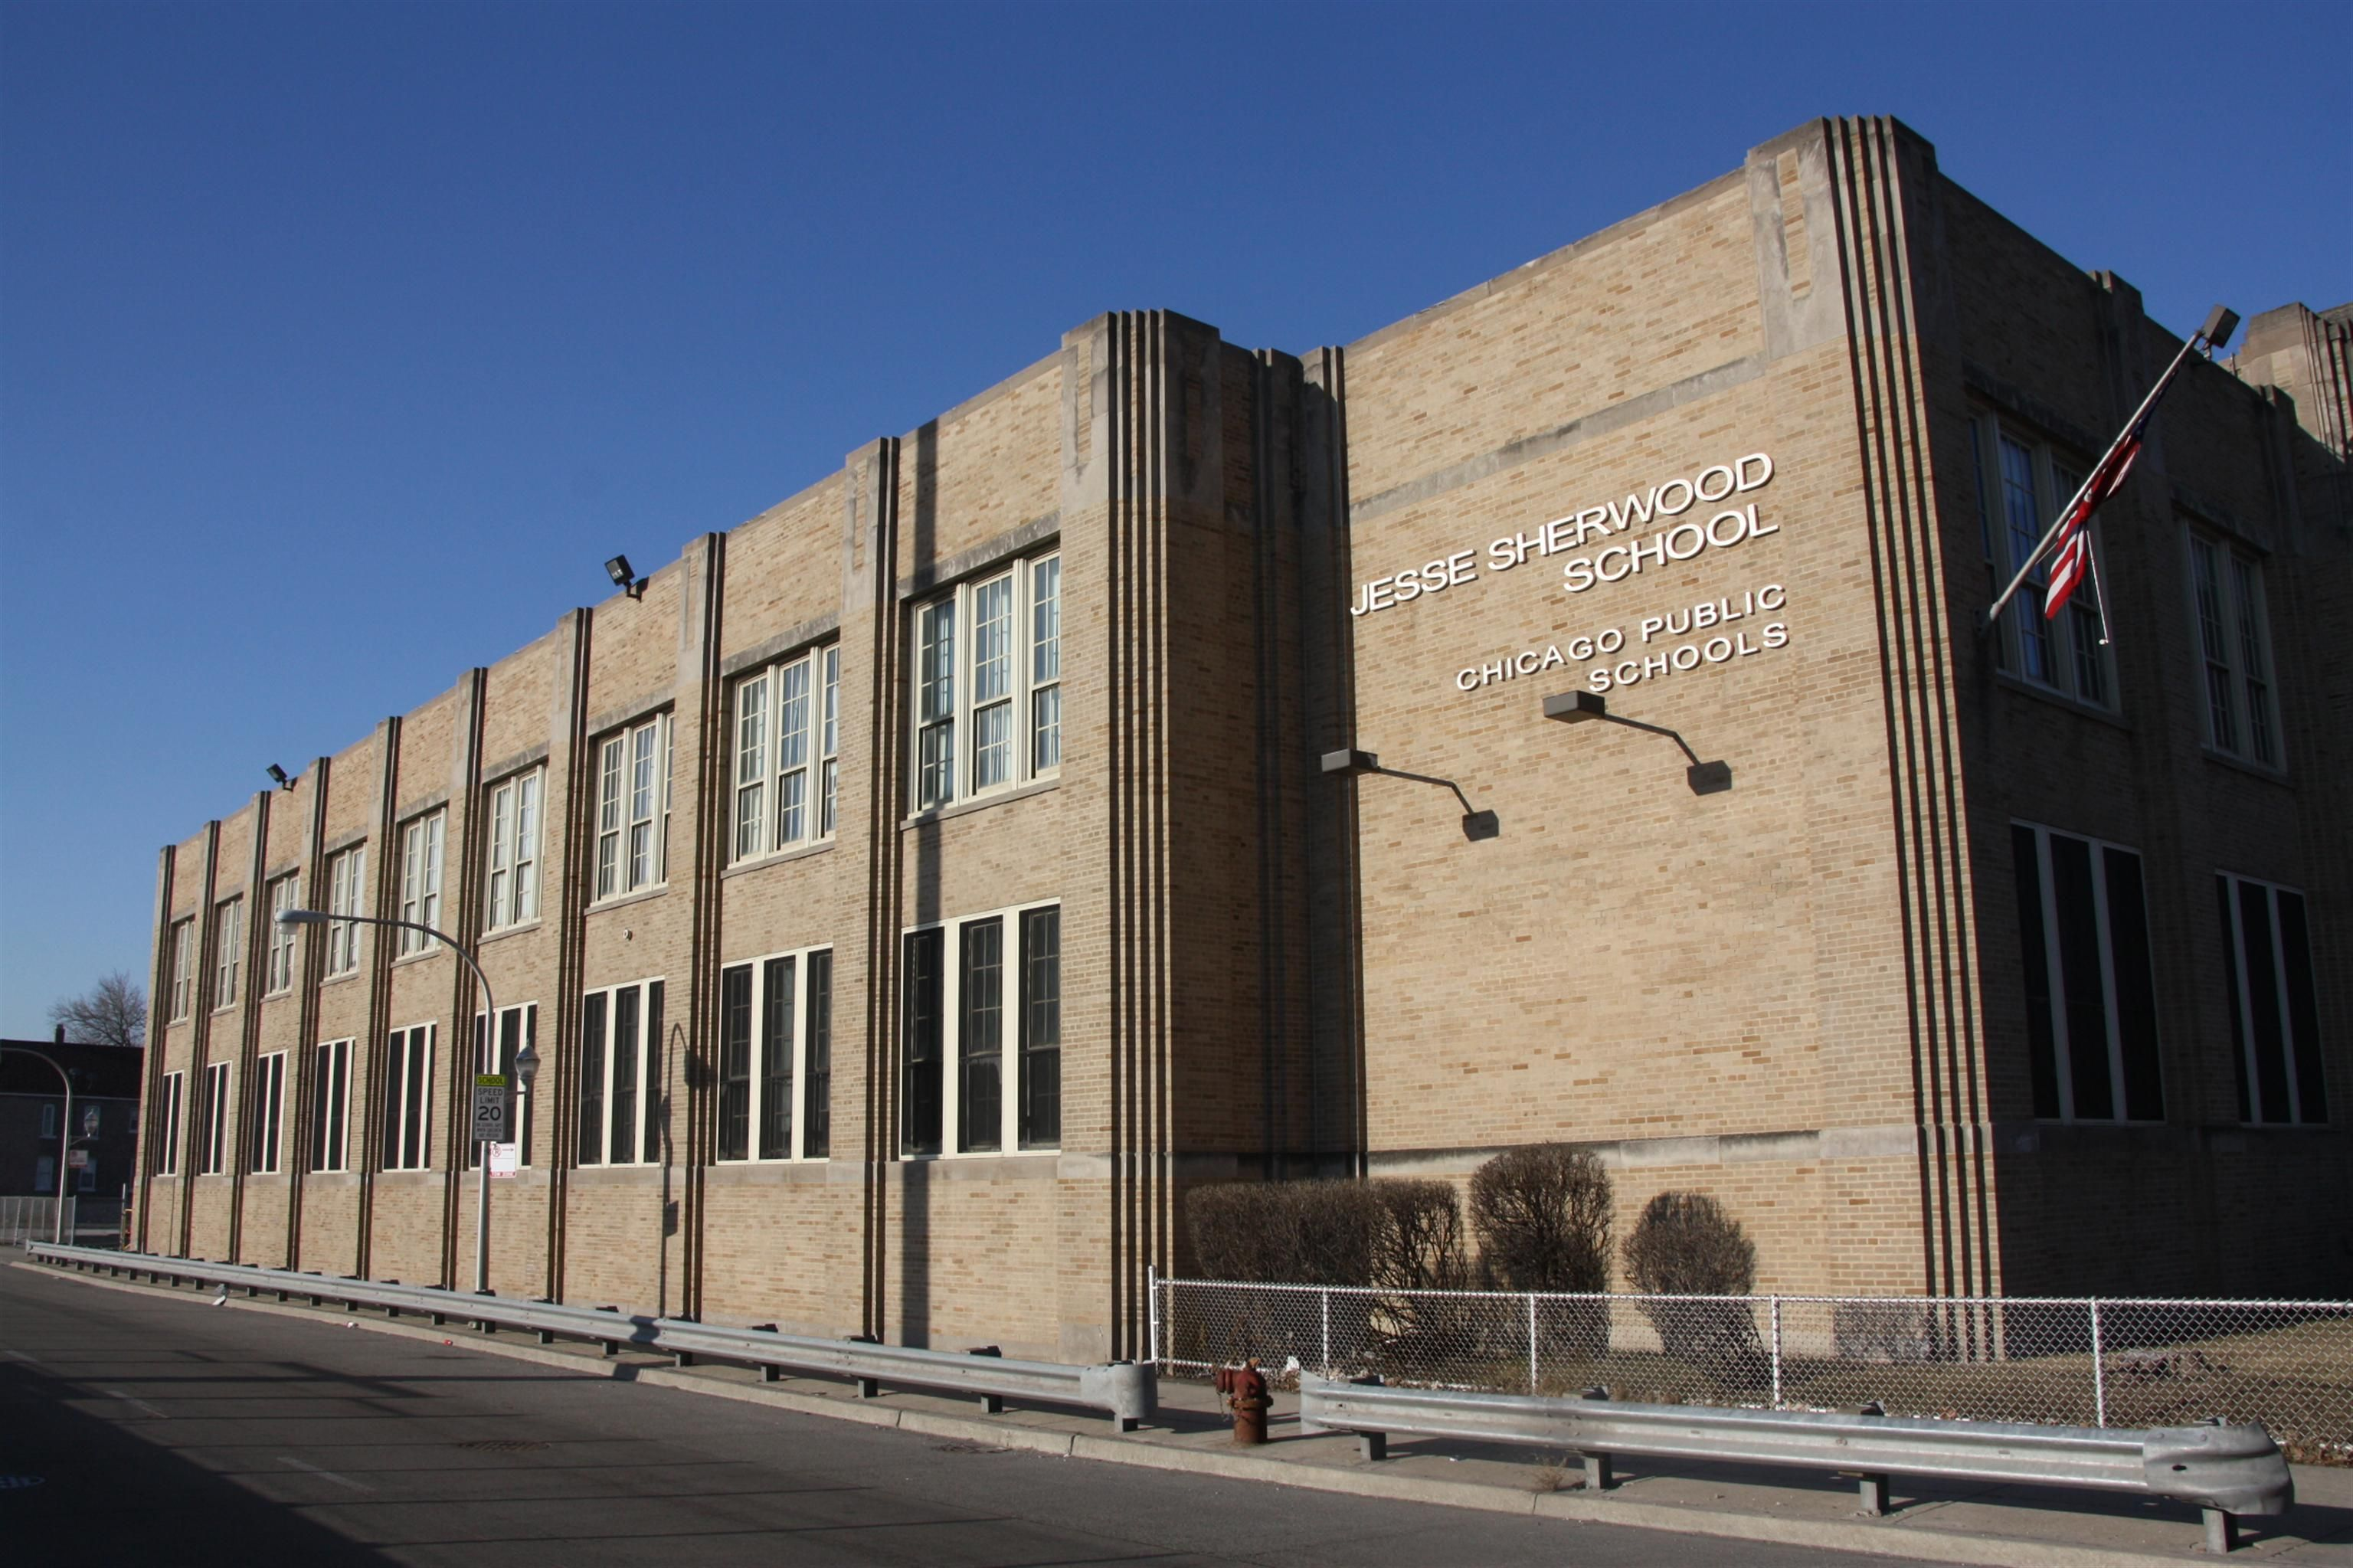 featured image Jesse Sherwood Elementary School